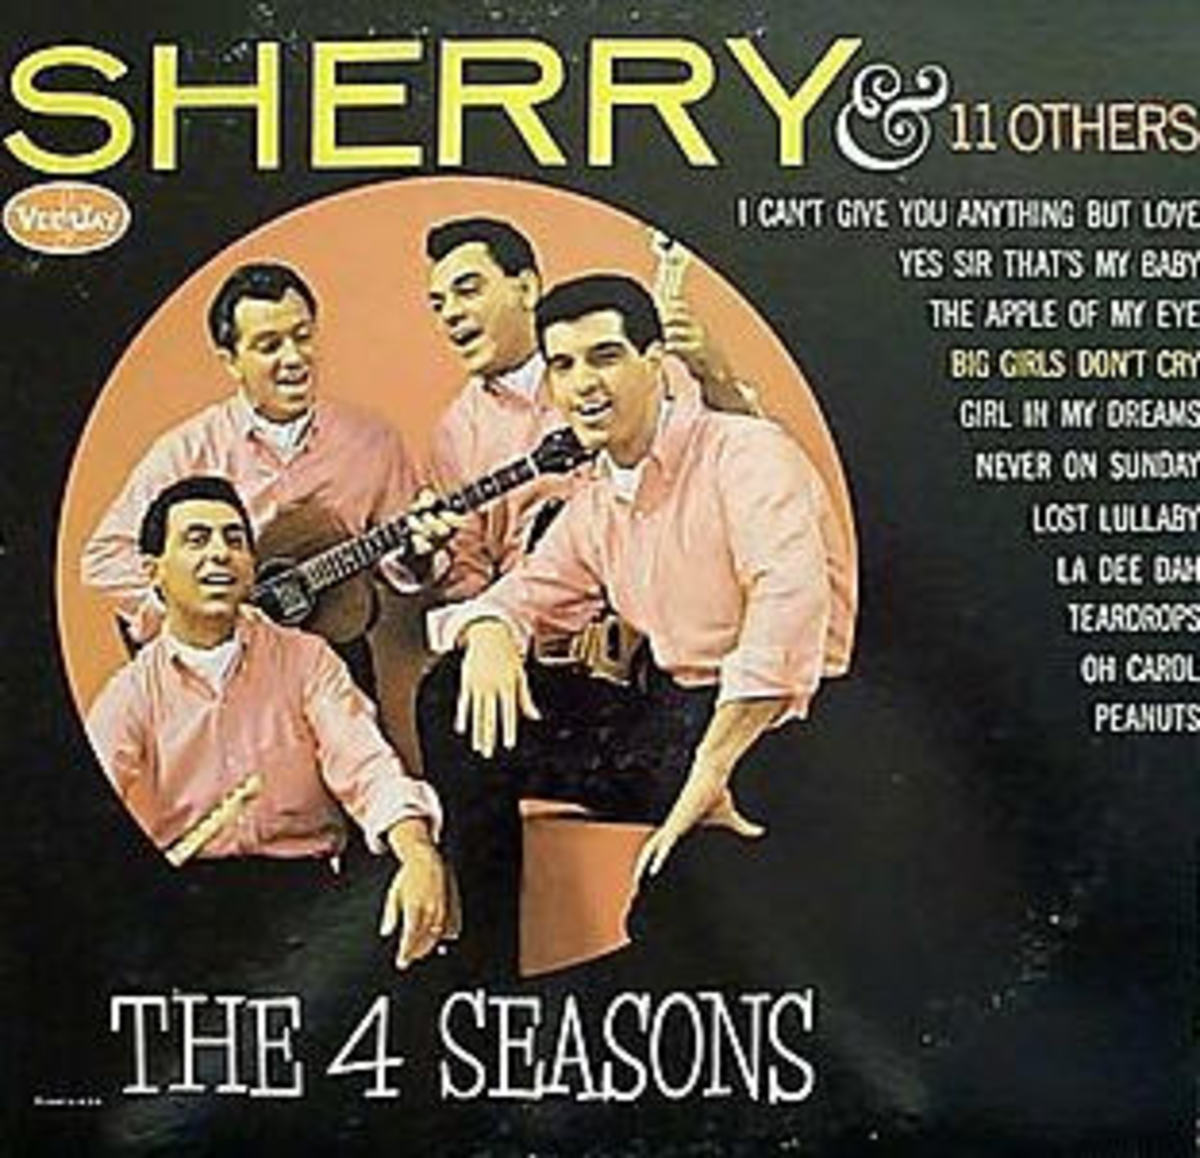 The American Four Seasons in 64